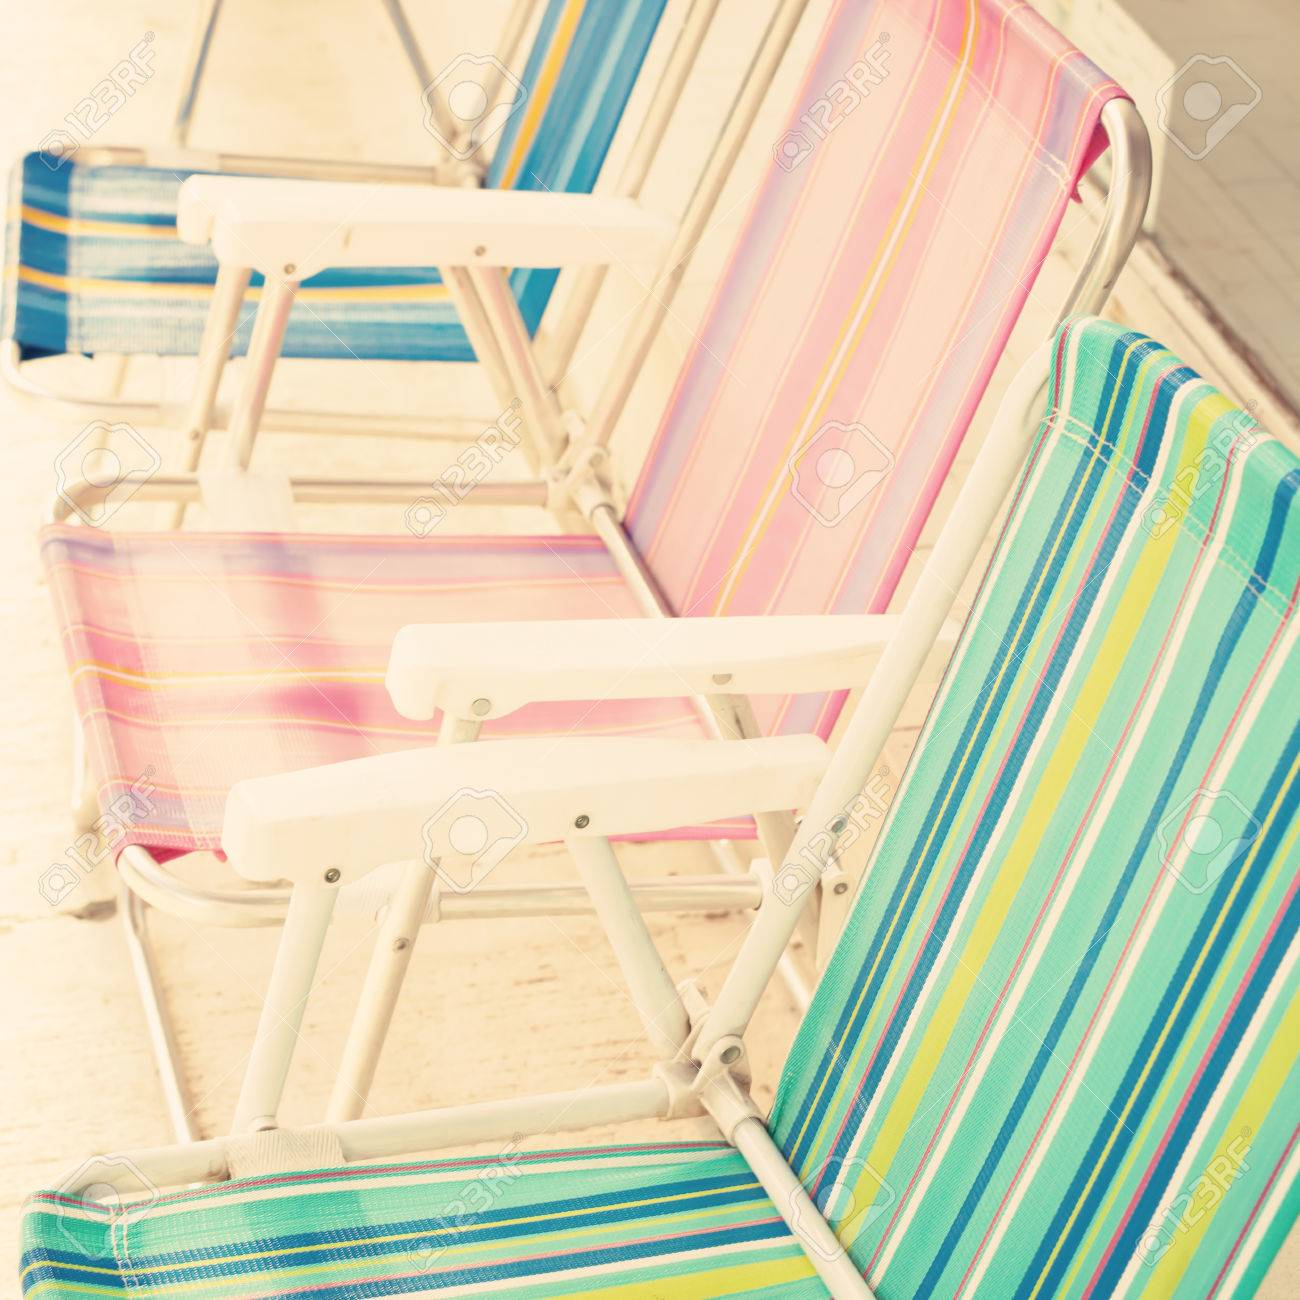 Vintage Beach Chairs Stock Photo Picture And Royalty Free Image Image 32676652